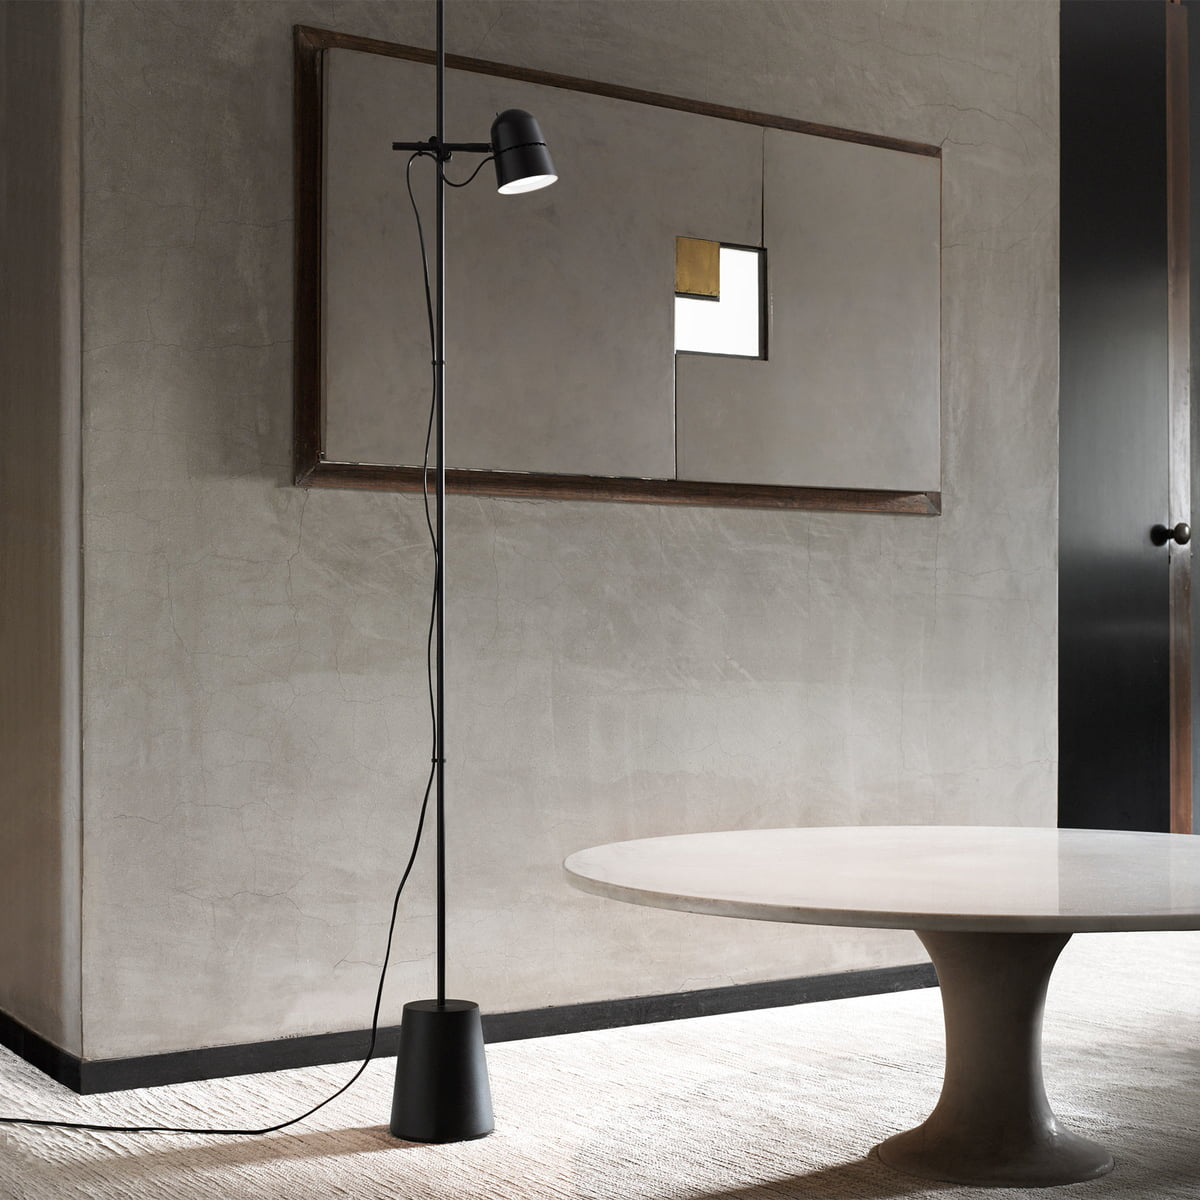 counterbalance floor lamp by luceplan. Black Bedroom Furniture Sets. Home Design Ideas